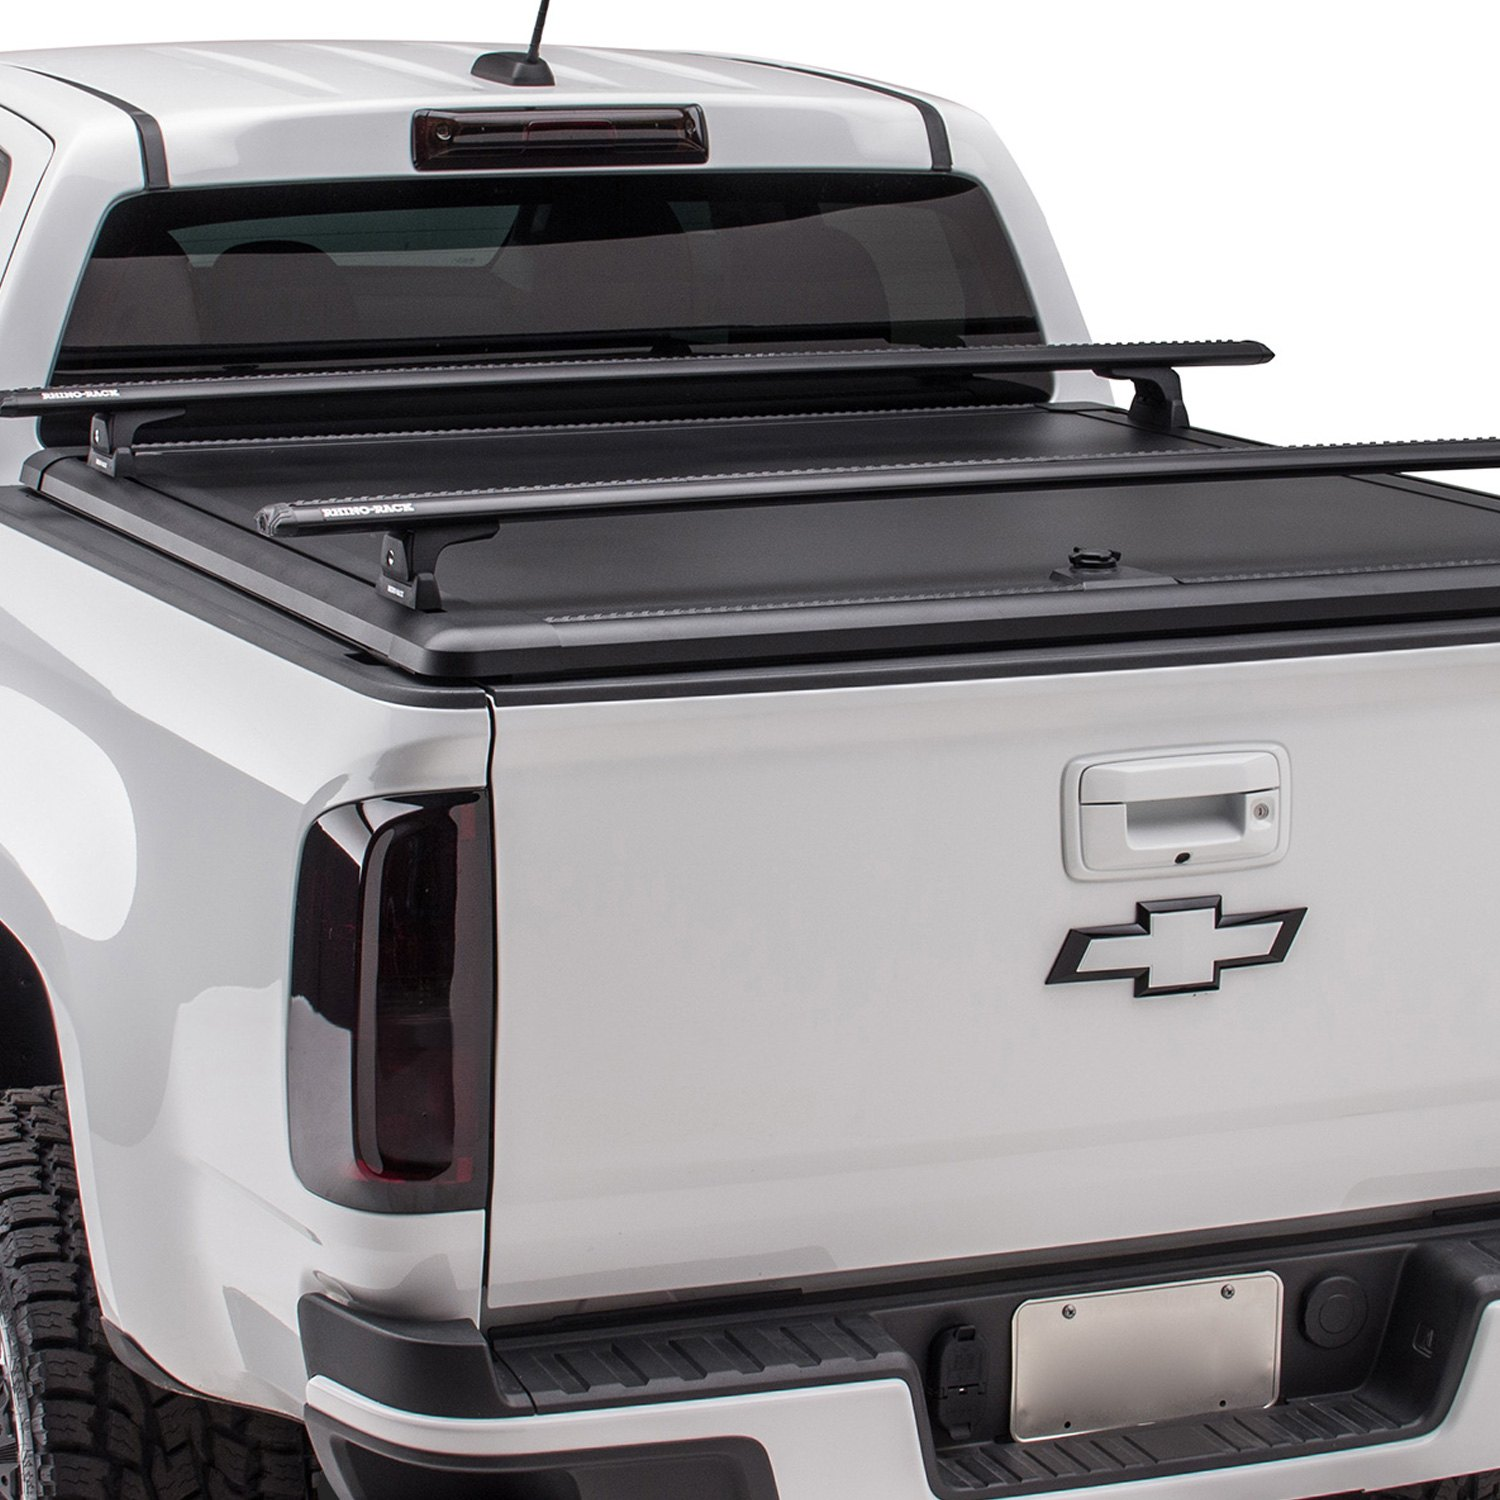 Truck Bed Cover With Kayak Rack For Sale